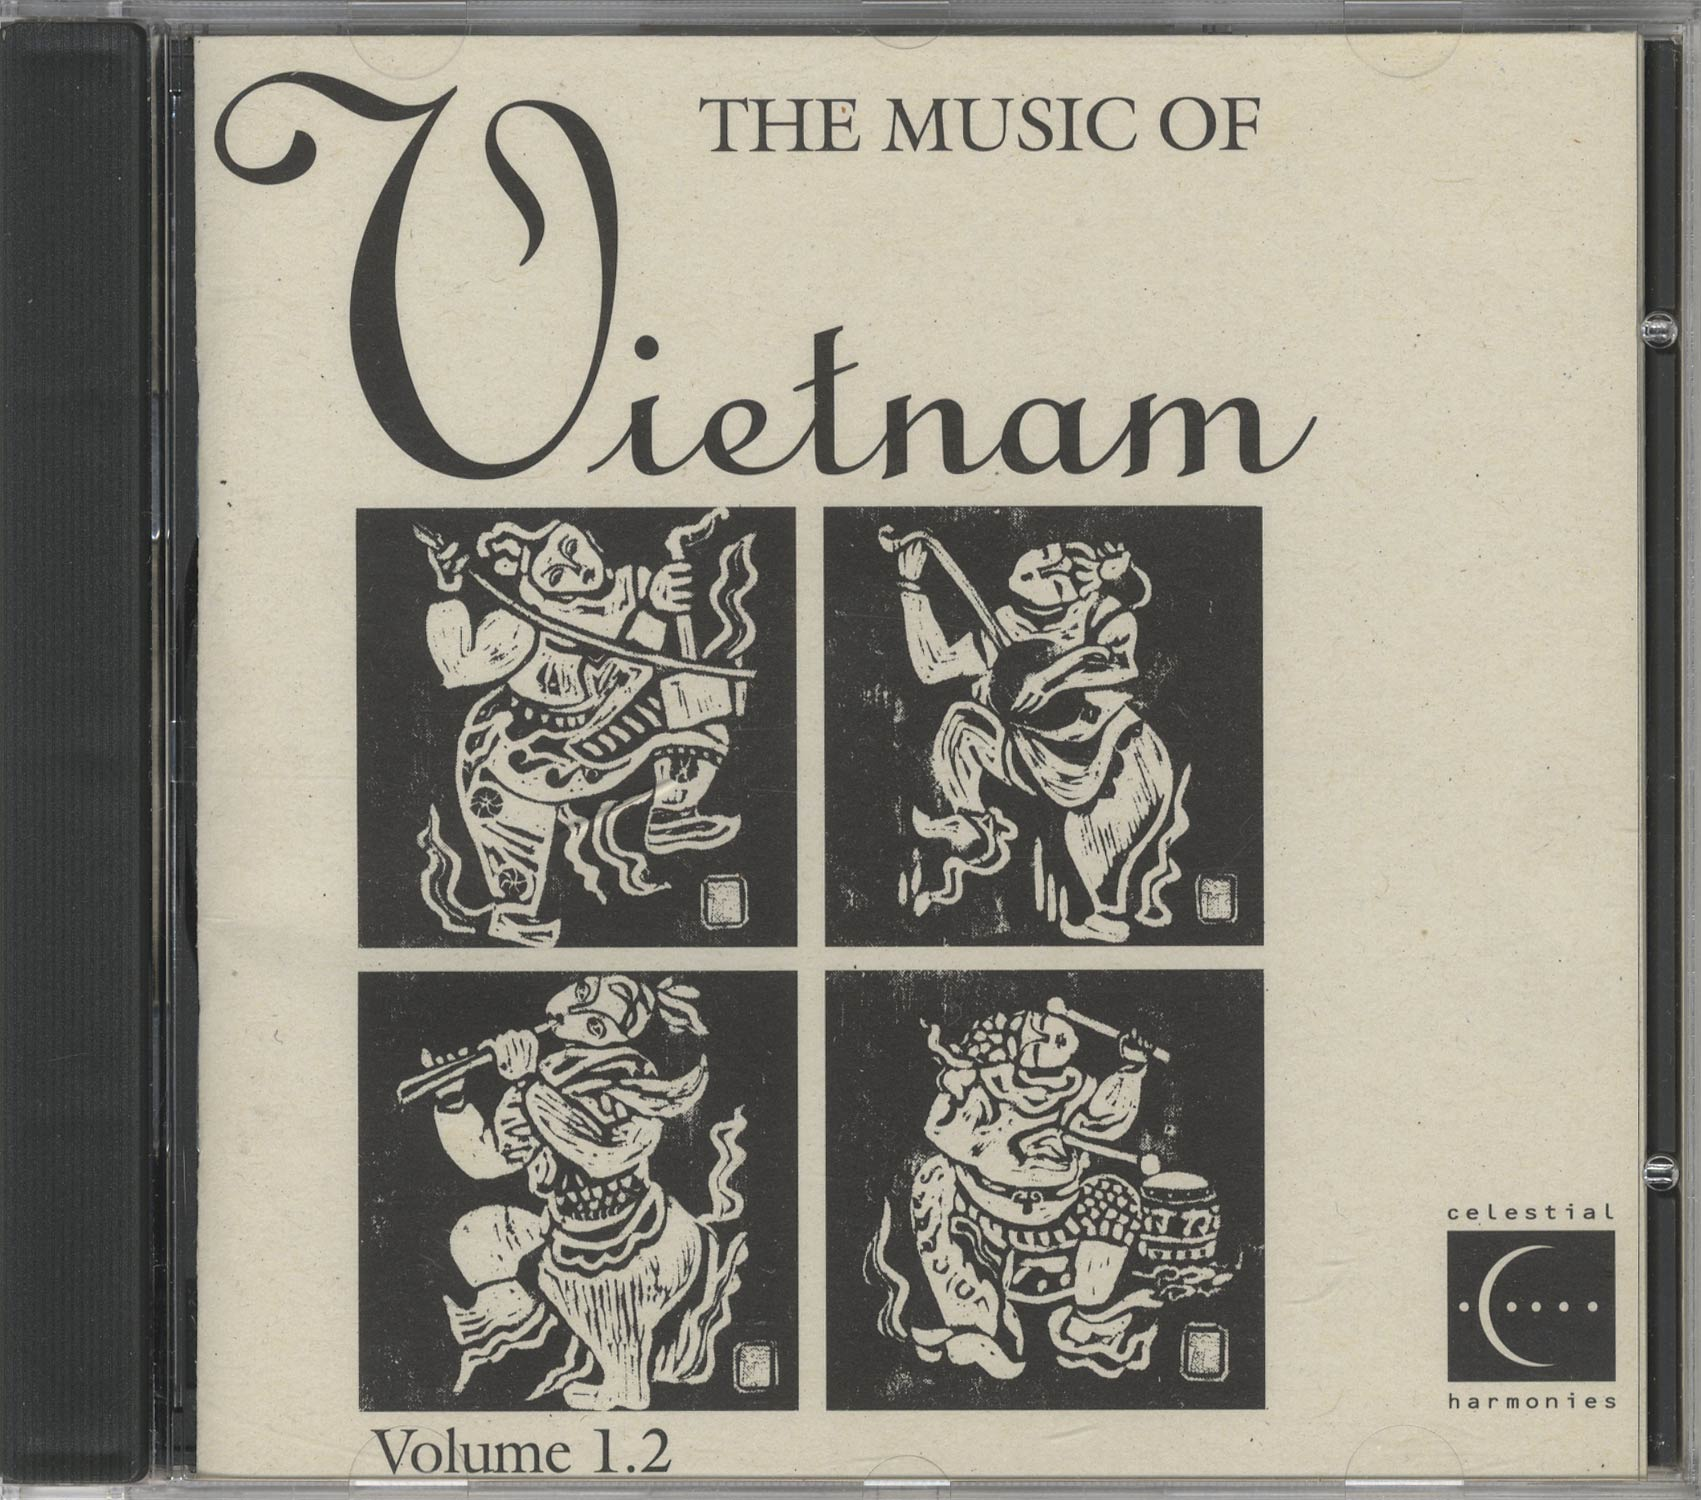 The Music of Vietnam 3 CD Boxed Set[image4]